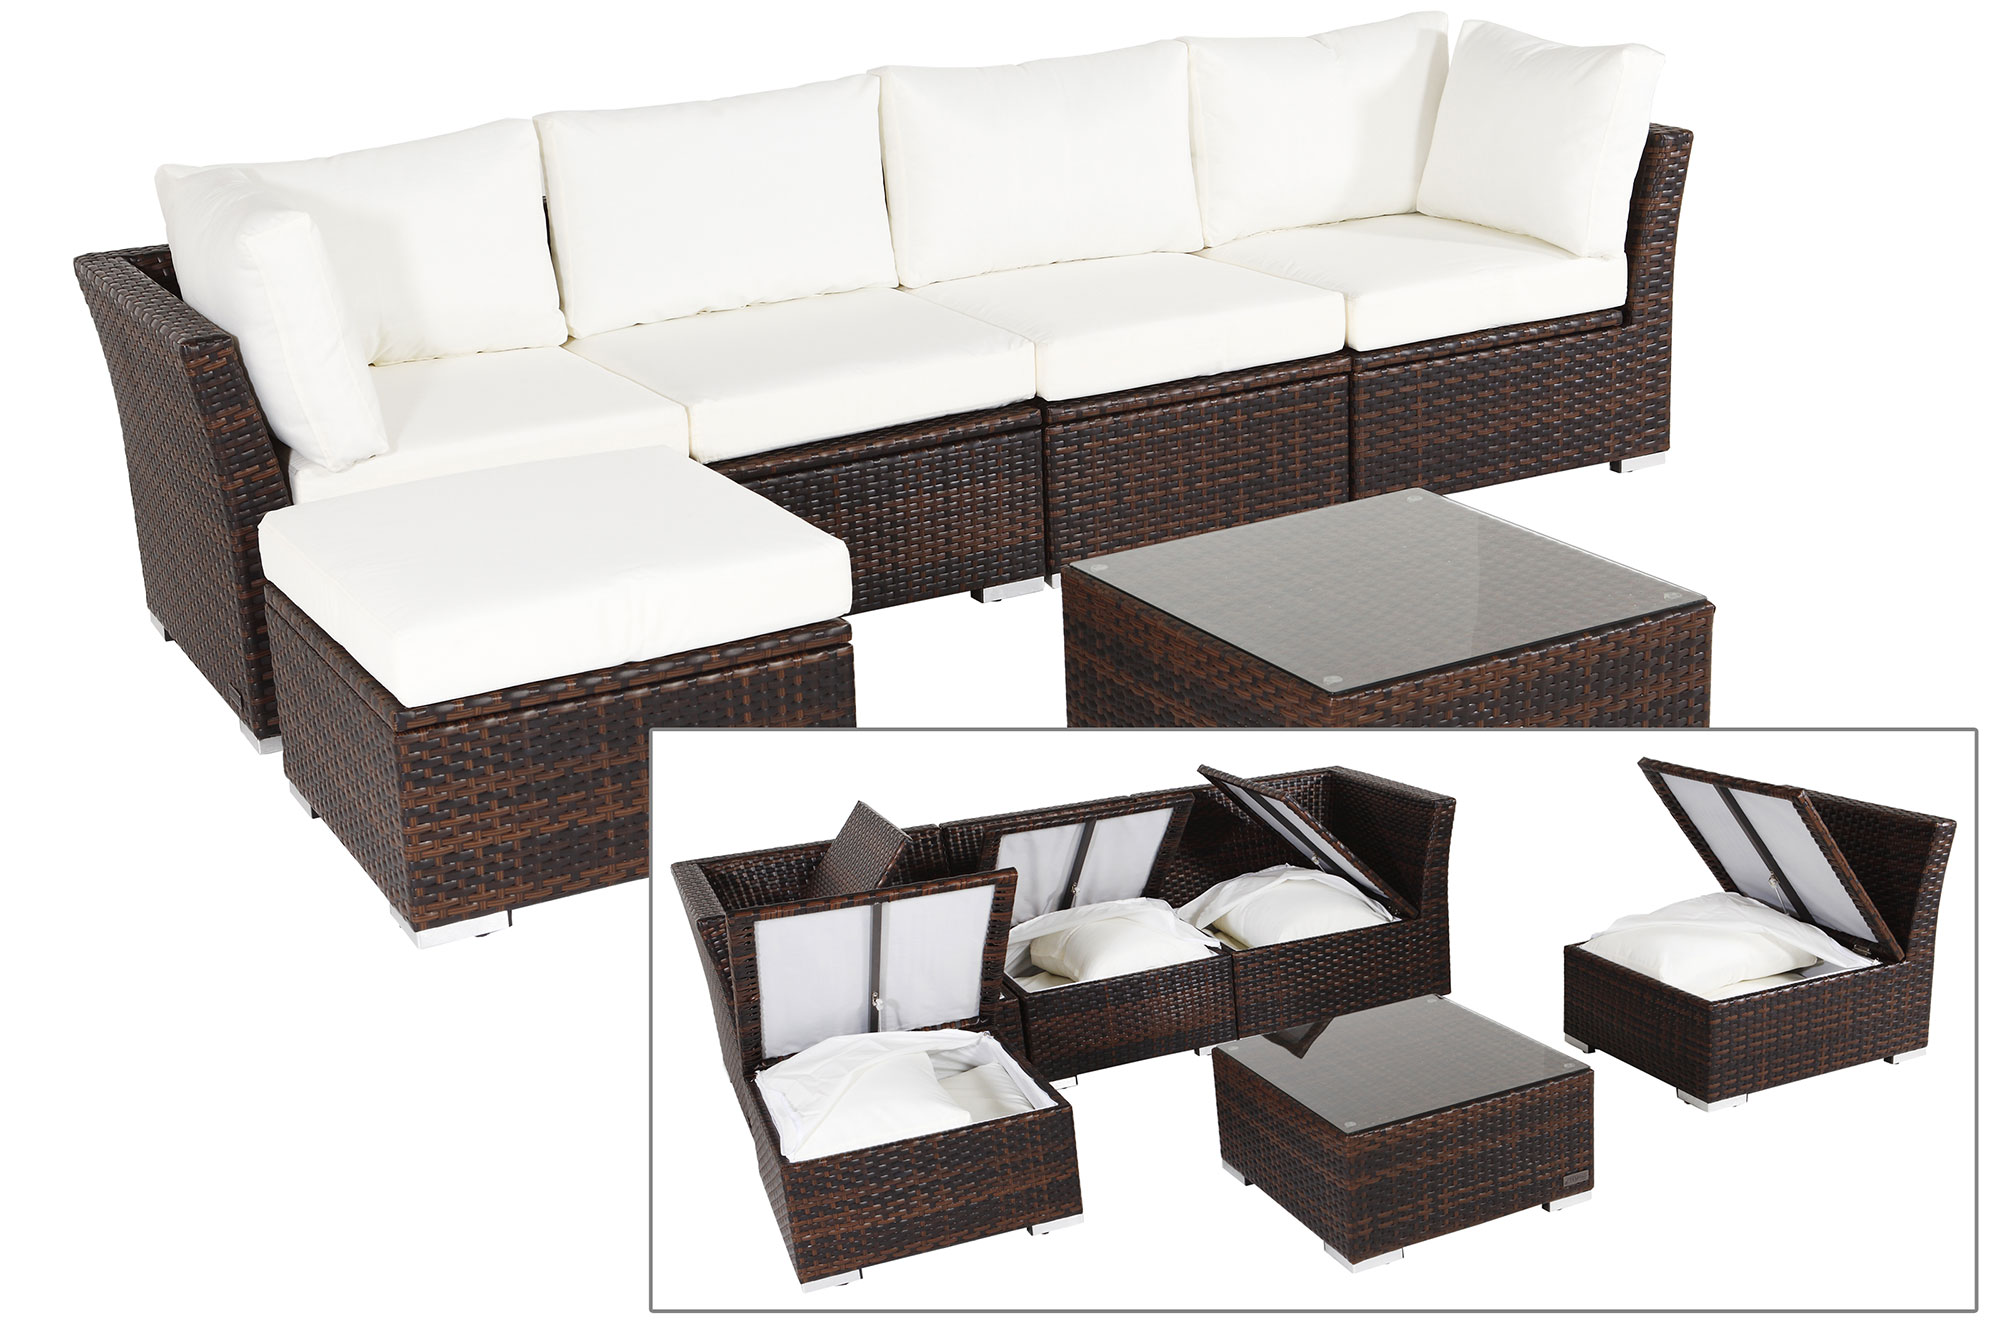 outflexx rattan gartenm bel aus polyrattan mit kissenboxfunktion f r 5 personen braun. Black Bedroom Furniture Sets. Home Design Ideas